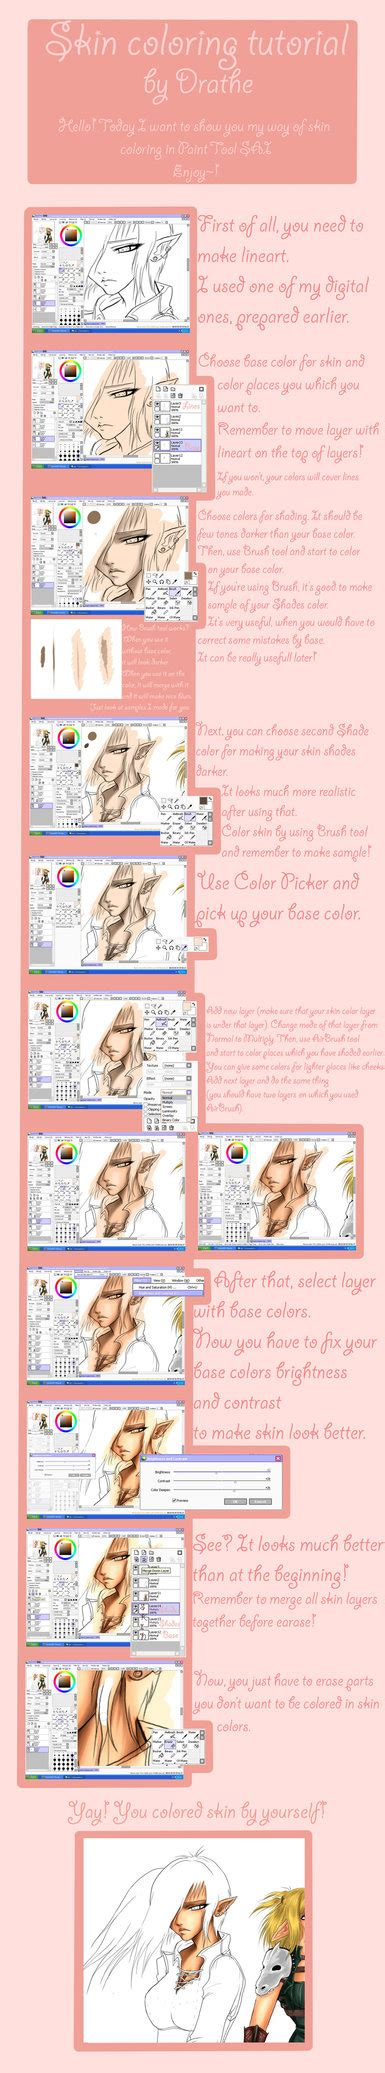 coloring anime with paint tool sai tutorial sai skin coloring tutorial by drathe on deviantart